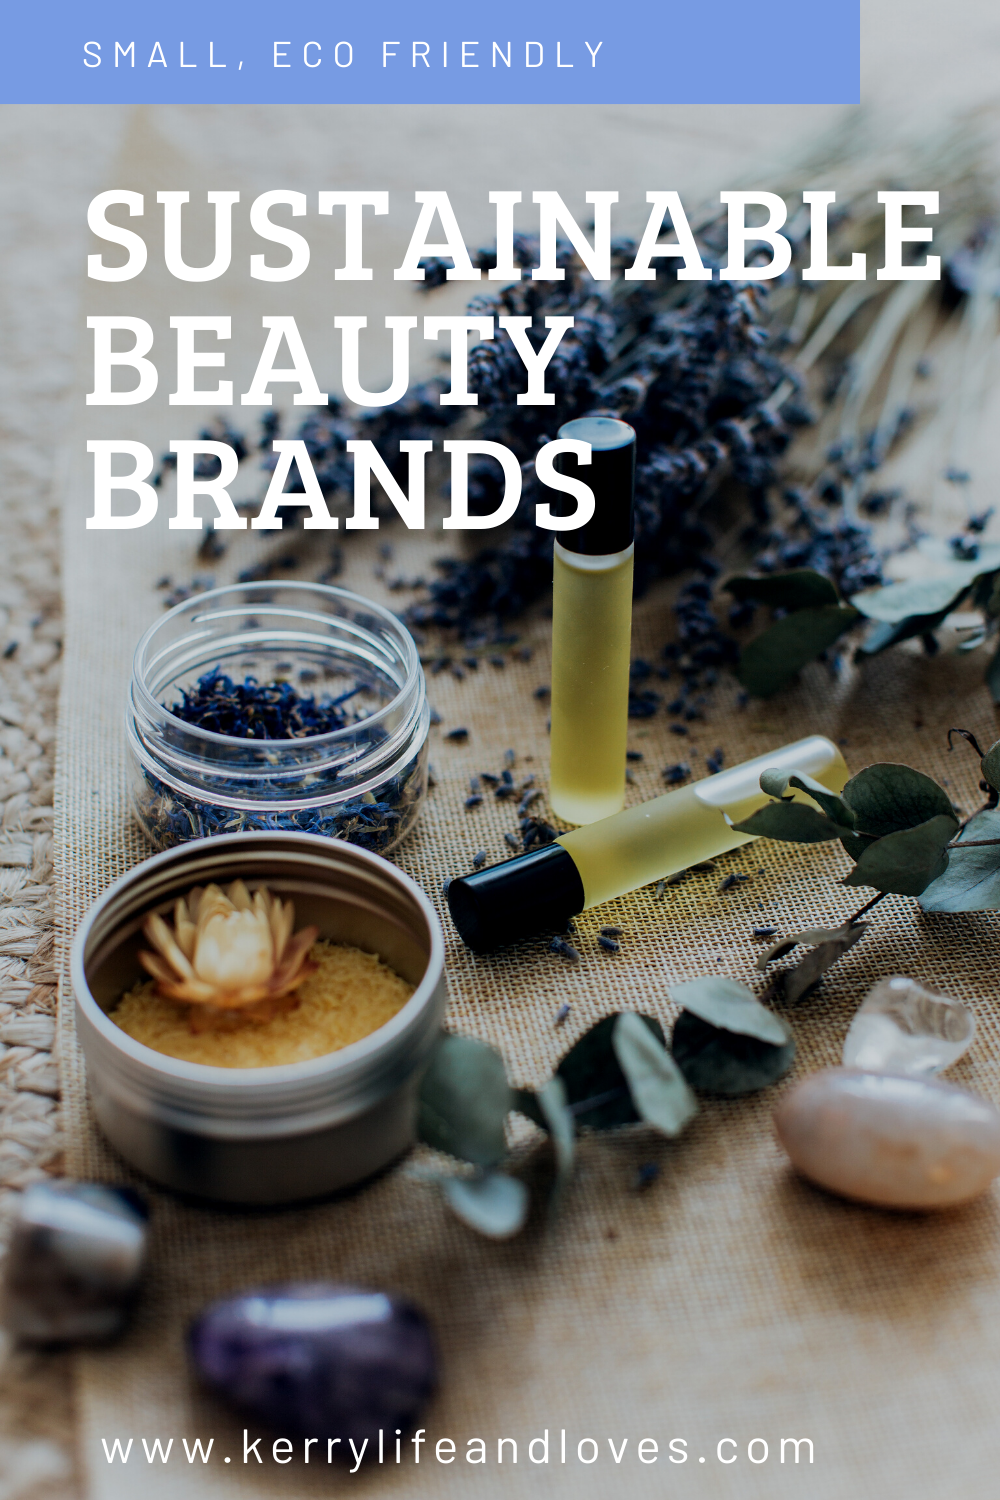 We are all trying to be a little more mindful when we make purchases. Beauty brands are stepping up and making it easier to buy more eco friendly items for our bathroom shelves. These sustainable beauty brands are producing some beautiful eco friendly and cruelty free products. #ecofriendly #ecoliving #crueltyfree #greenbeauty #sustainablebeautybrands